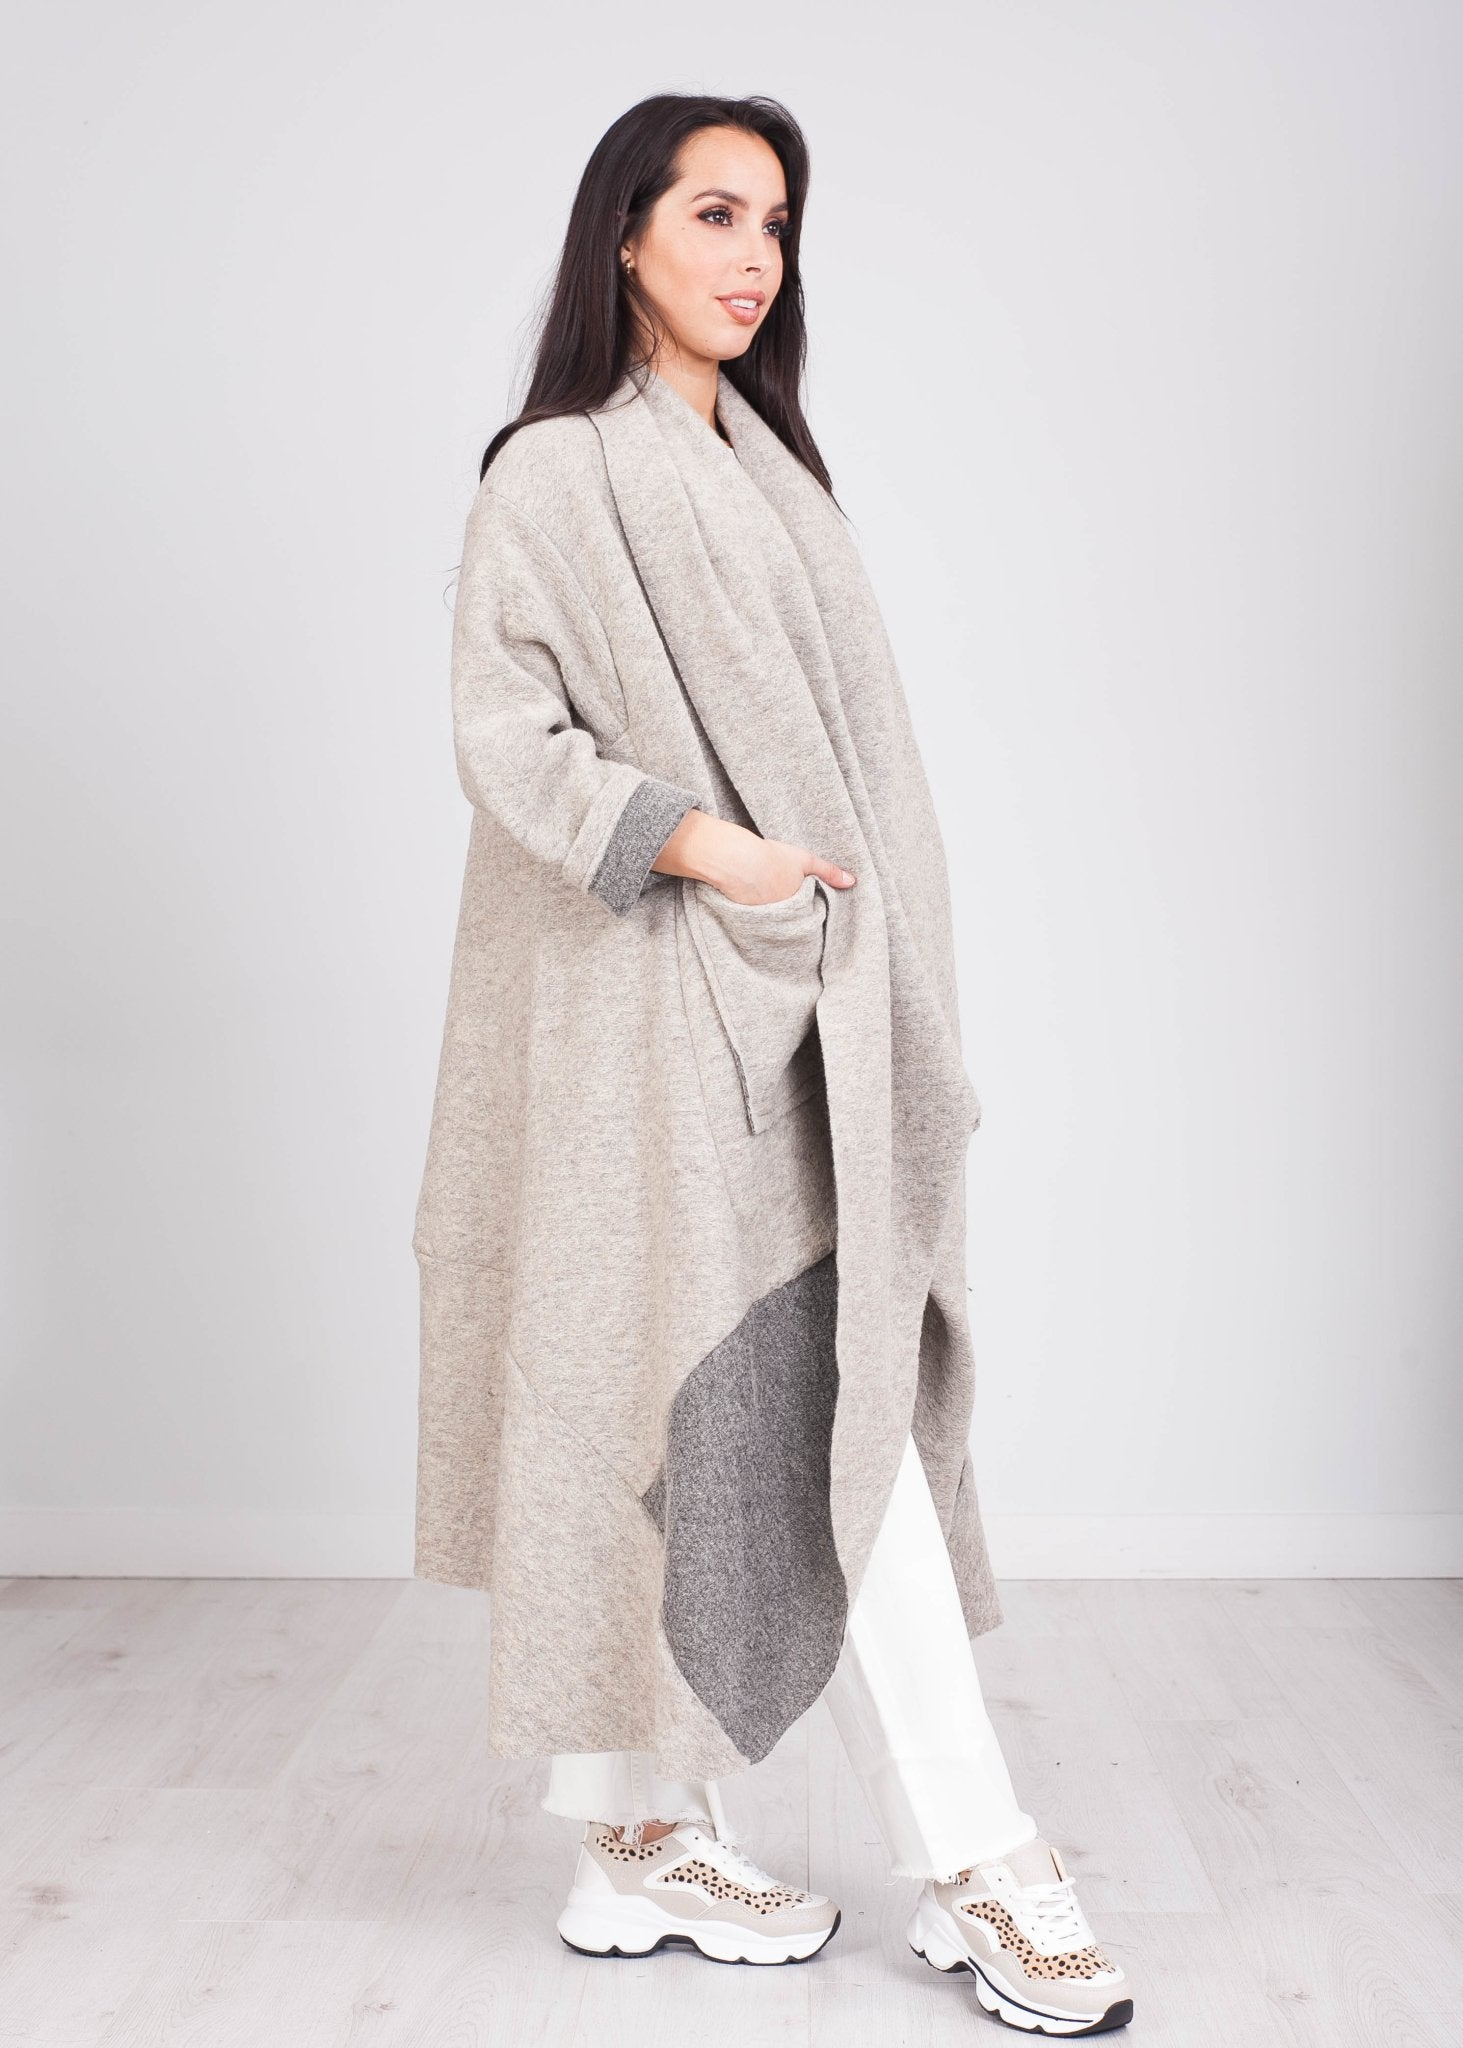 Emilia Two Tone Oversized Cardigan - The Walk in Wardrobe